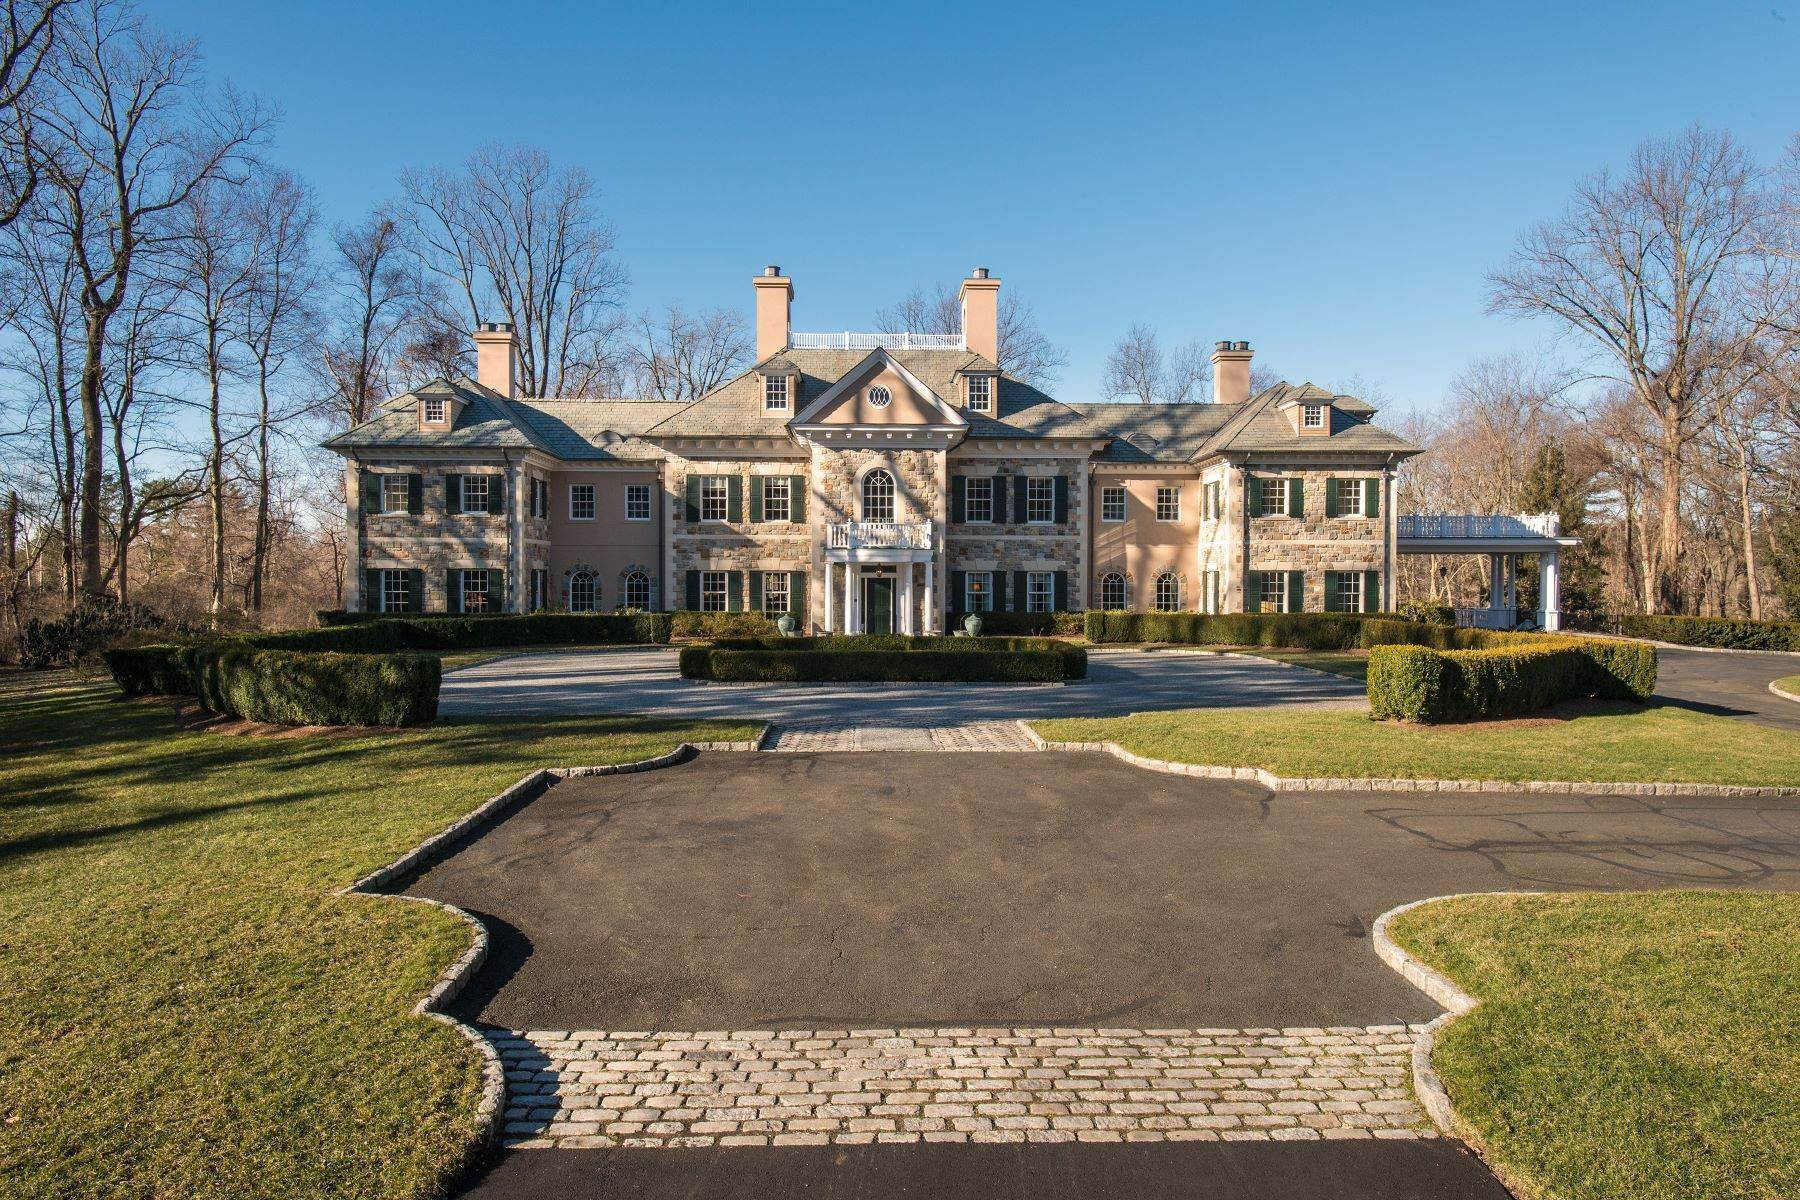 Single Family Homes for Sale at Architectural Masterpiece 41 Alpine Road Greenwich, Connecticut 06830 United States